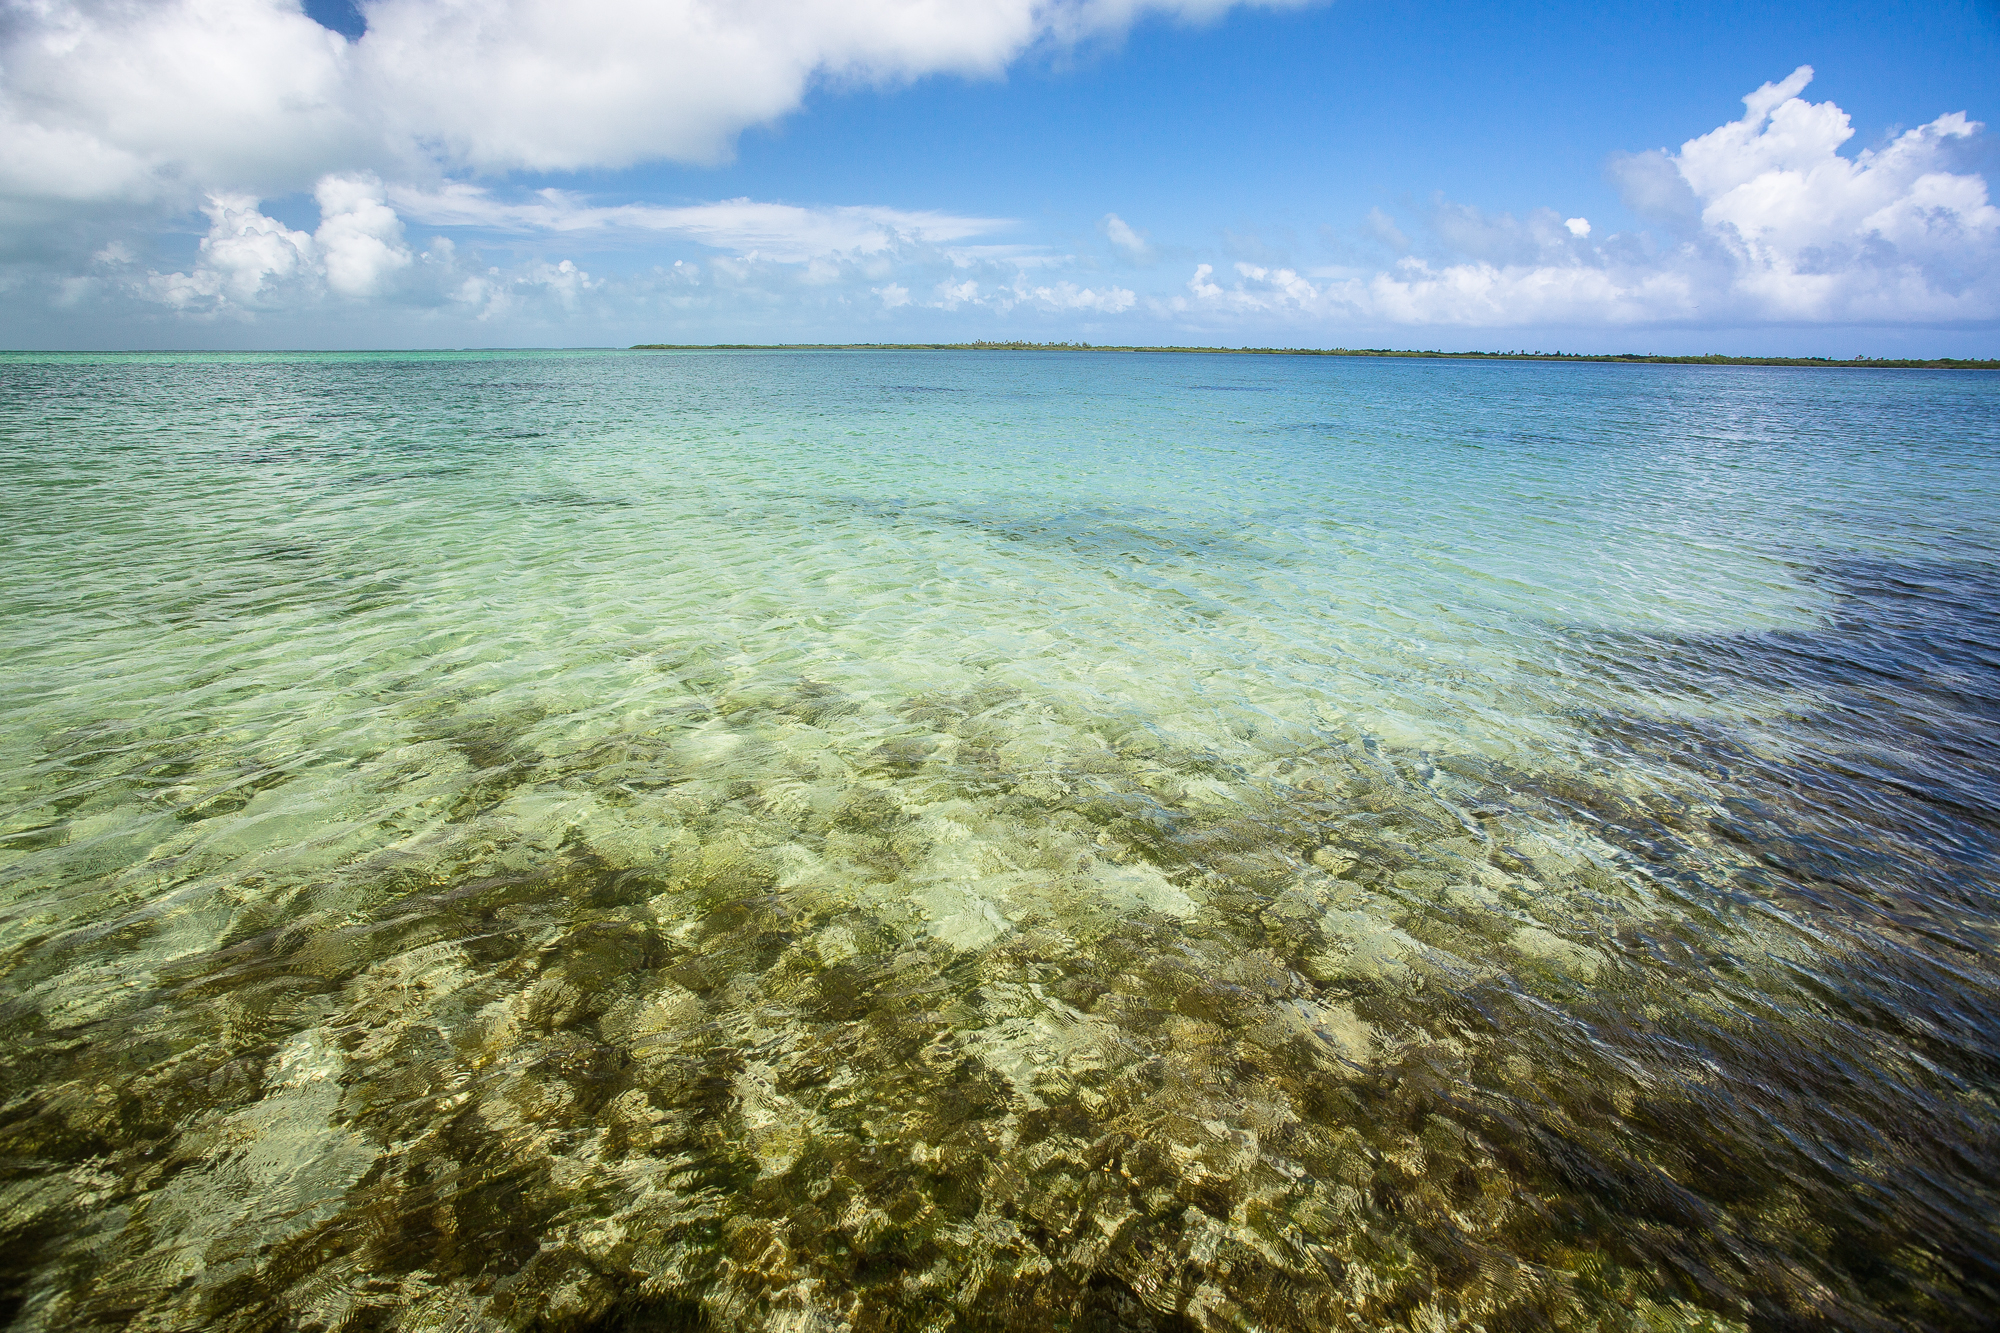 The flats on Ascension Bay stretch on seemingly endlessly, offering opportunities for lengthy searches for permit, bonefish and other local species. (photo: Chad Shmukler)